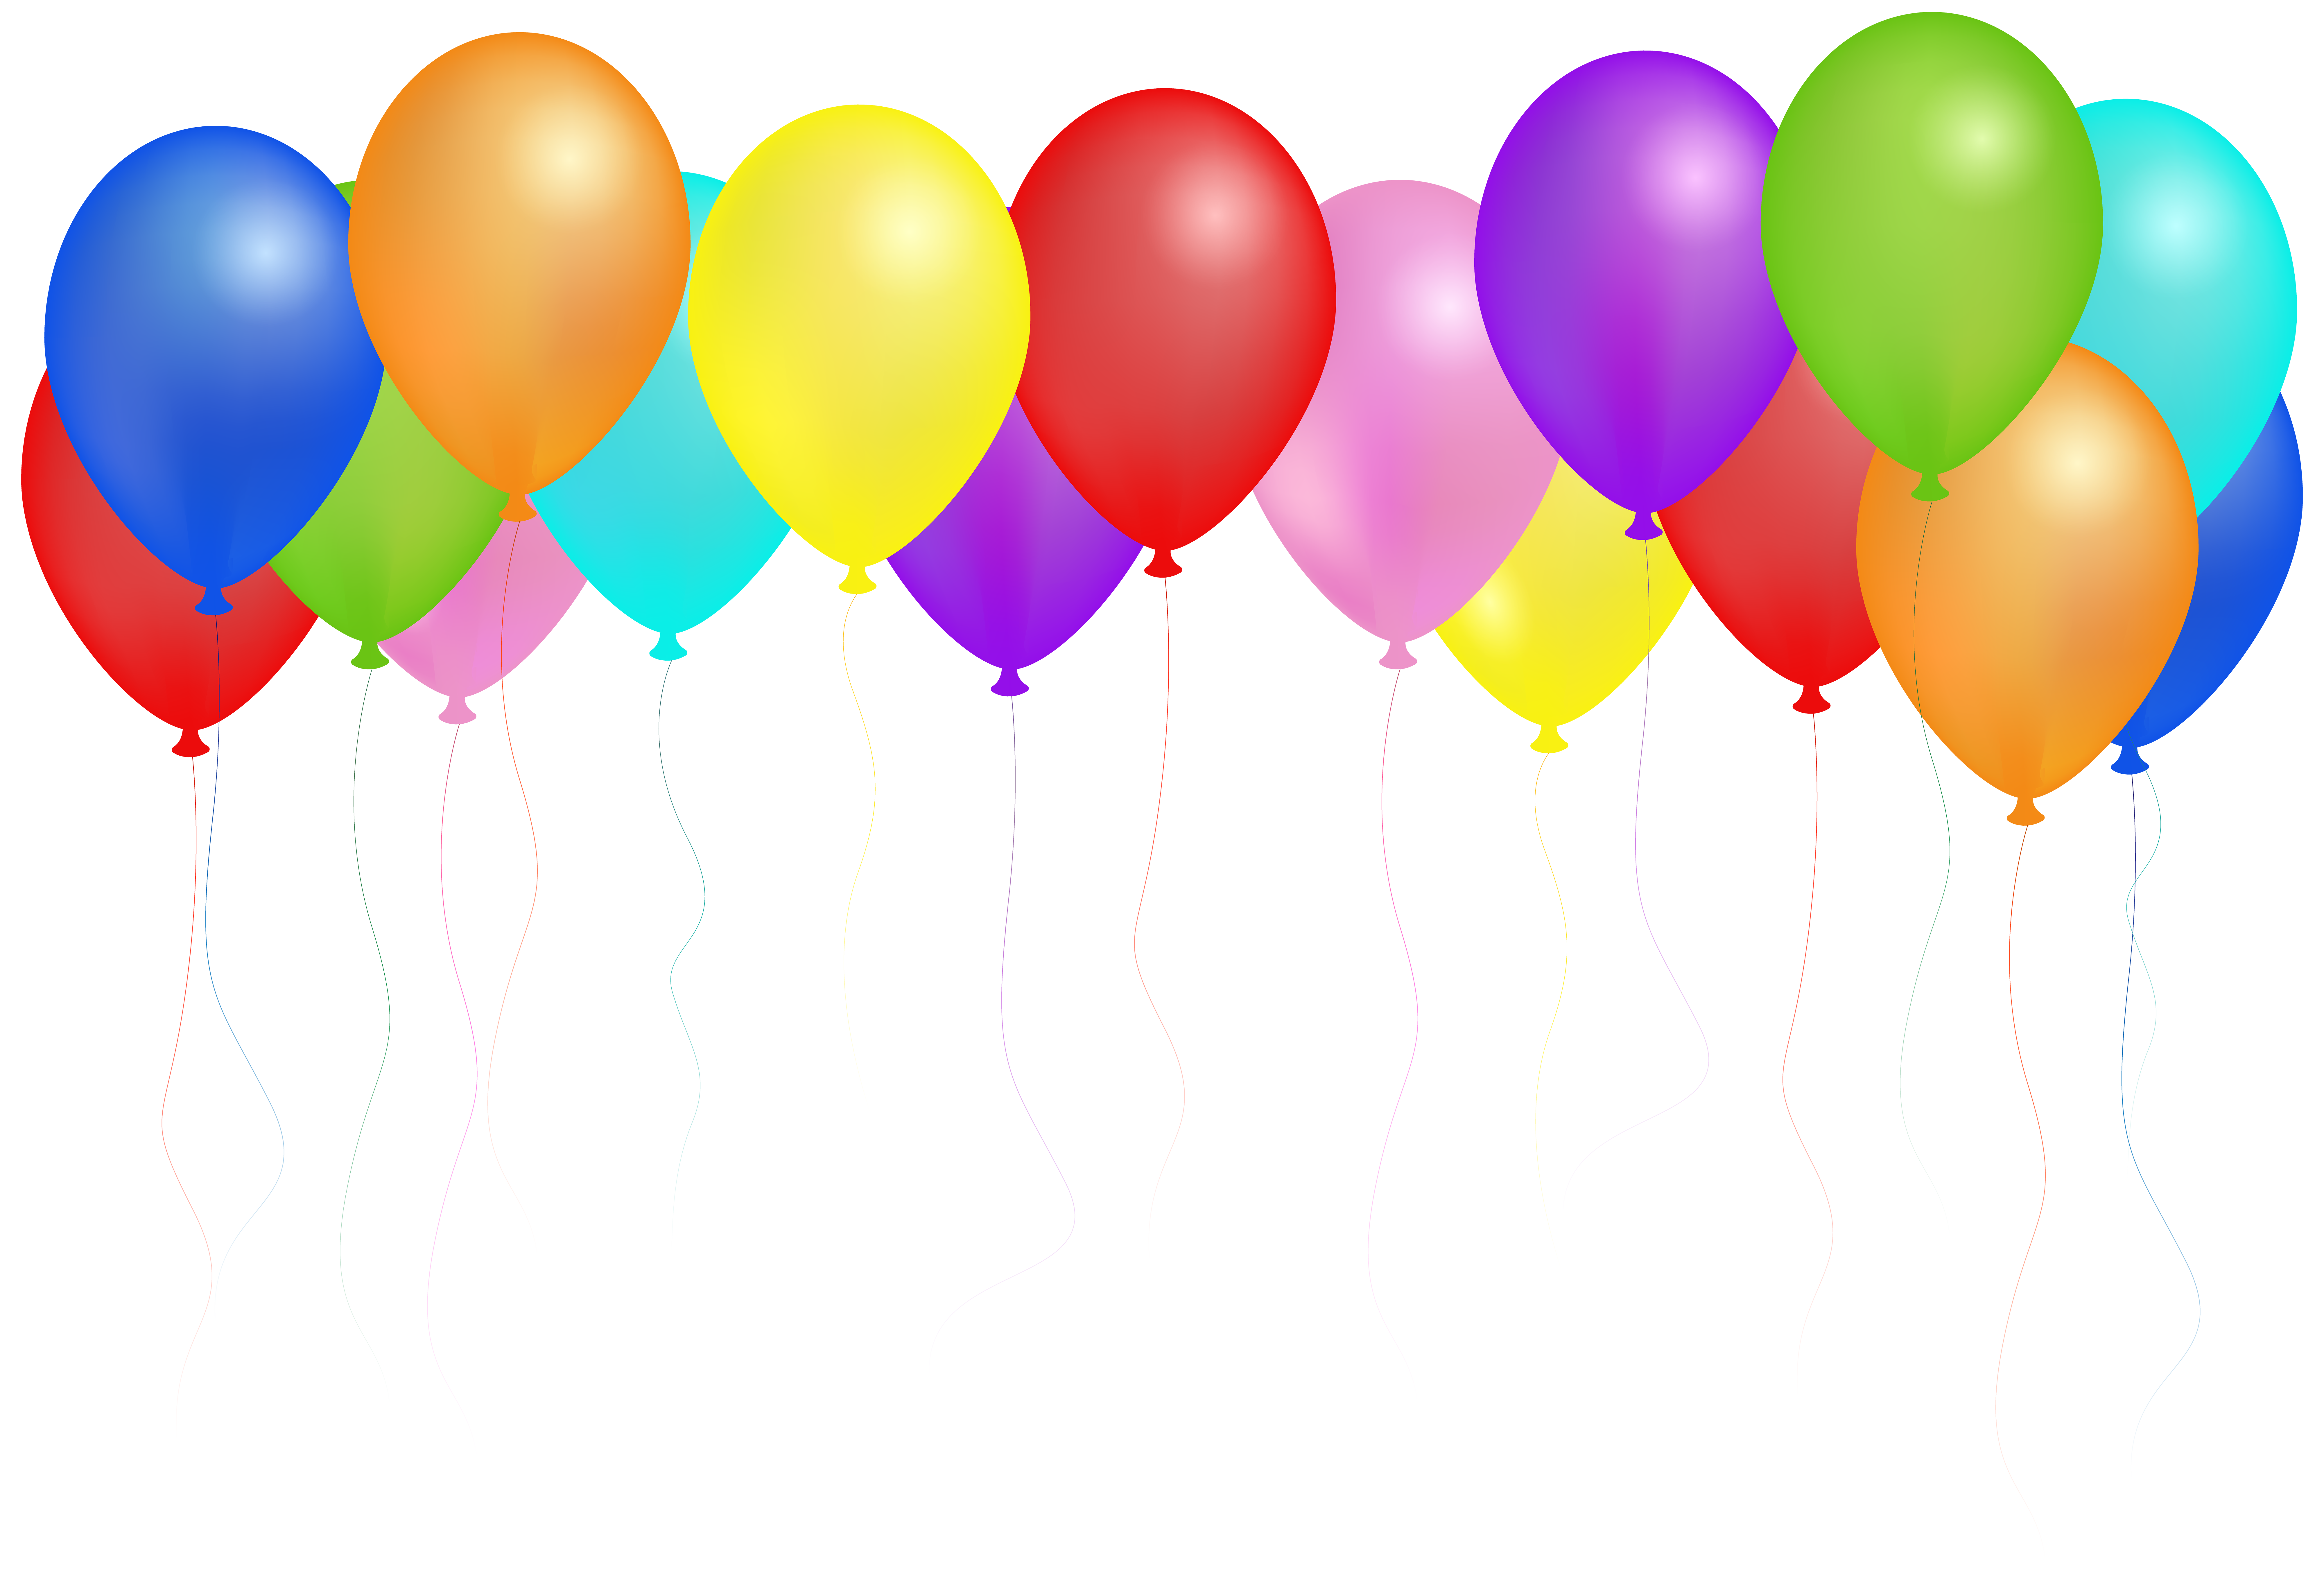 Free clipart images of balloons transparent library Balloons PNG Clip Art Image | Gallery Yopriceville - High-Quality ... transparent library